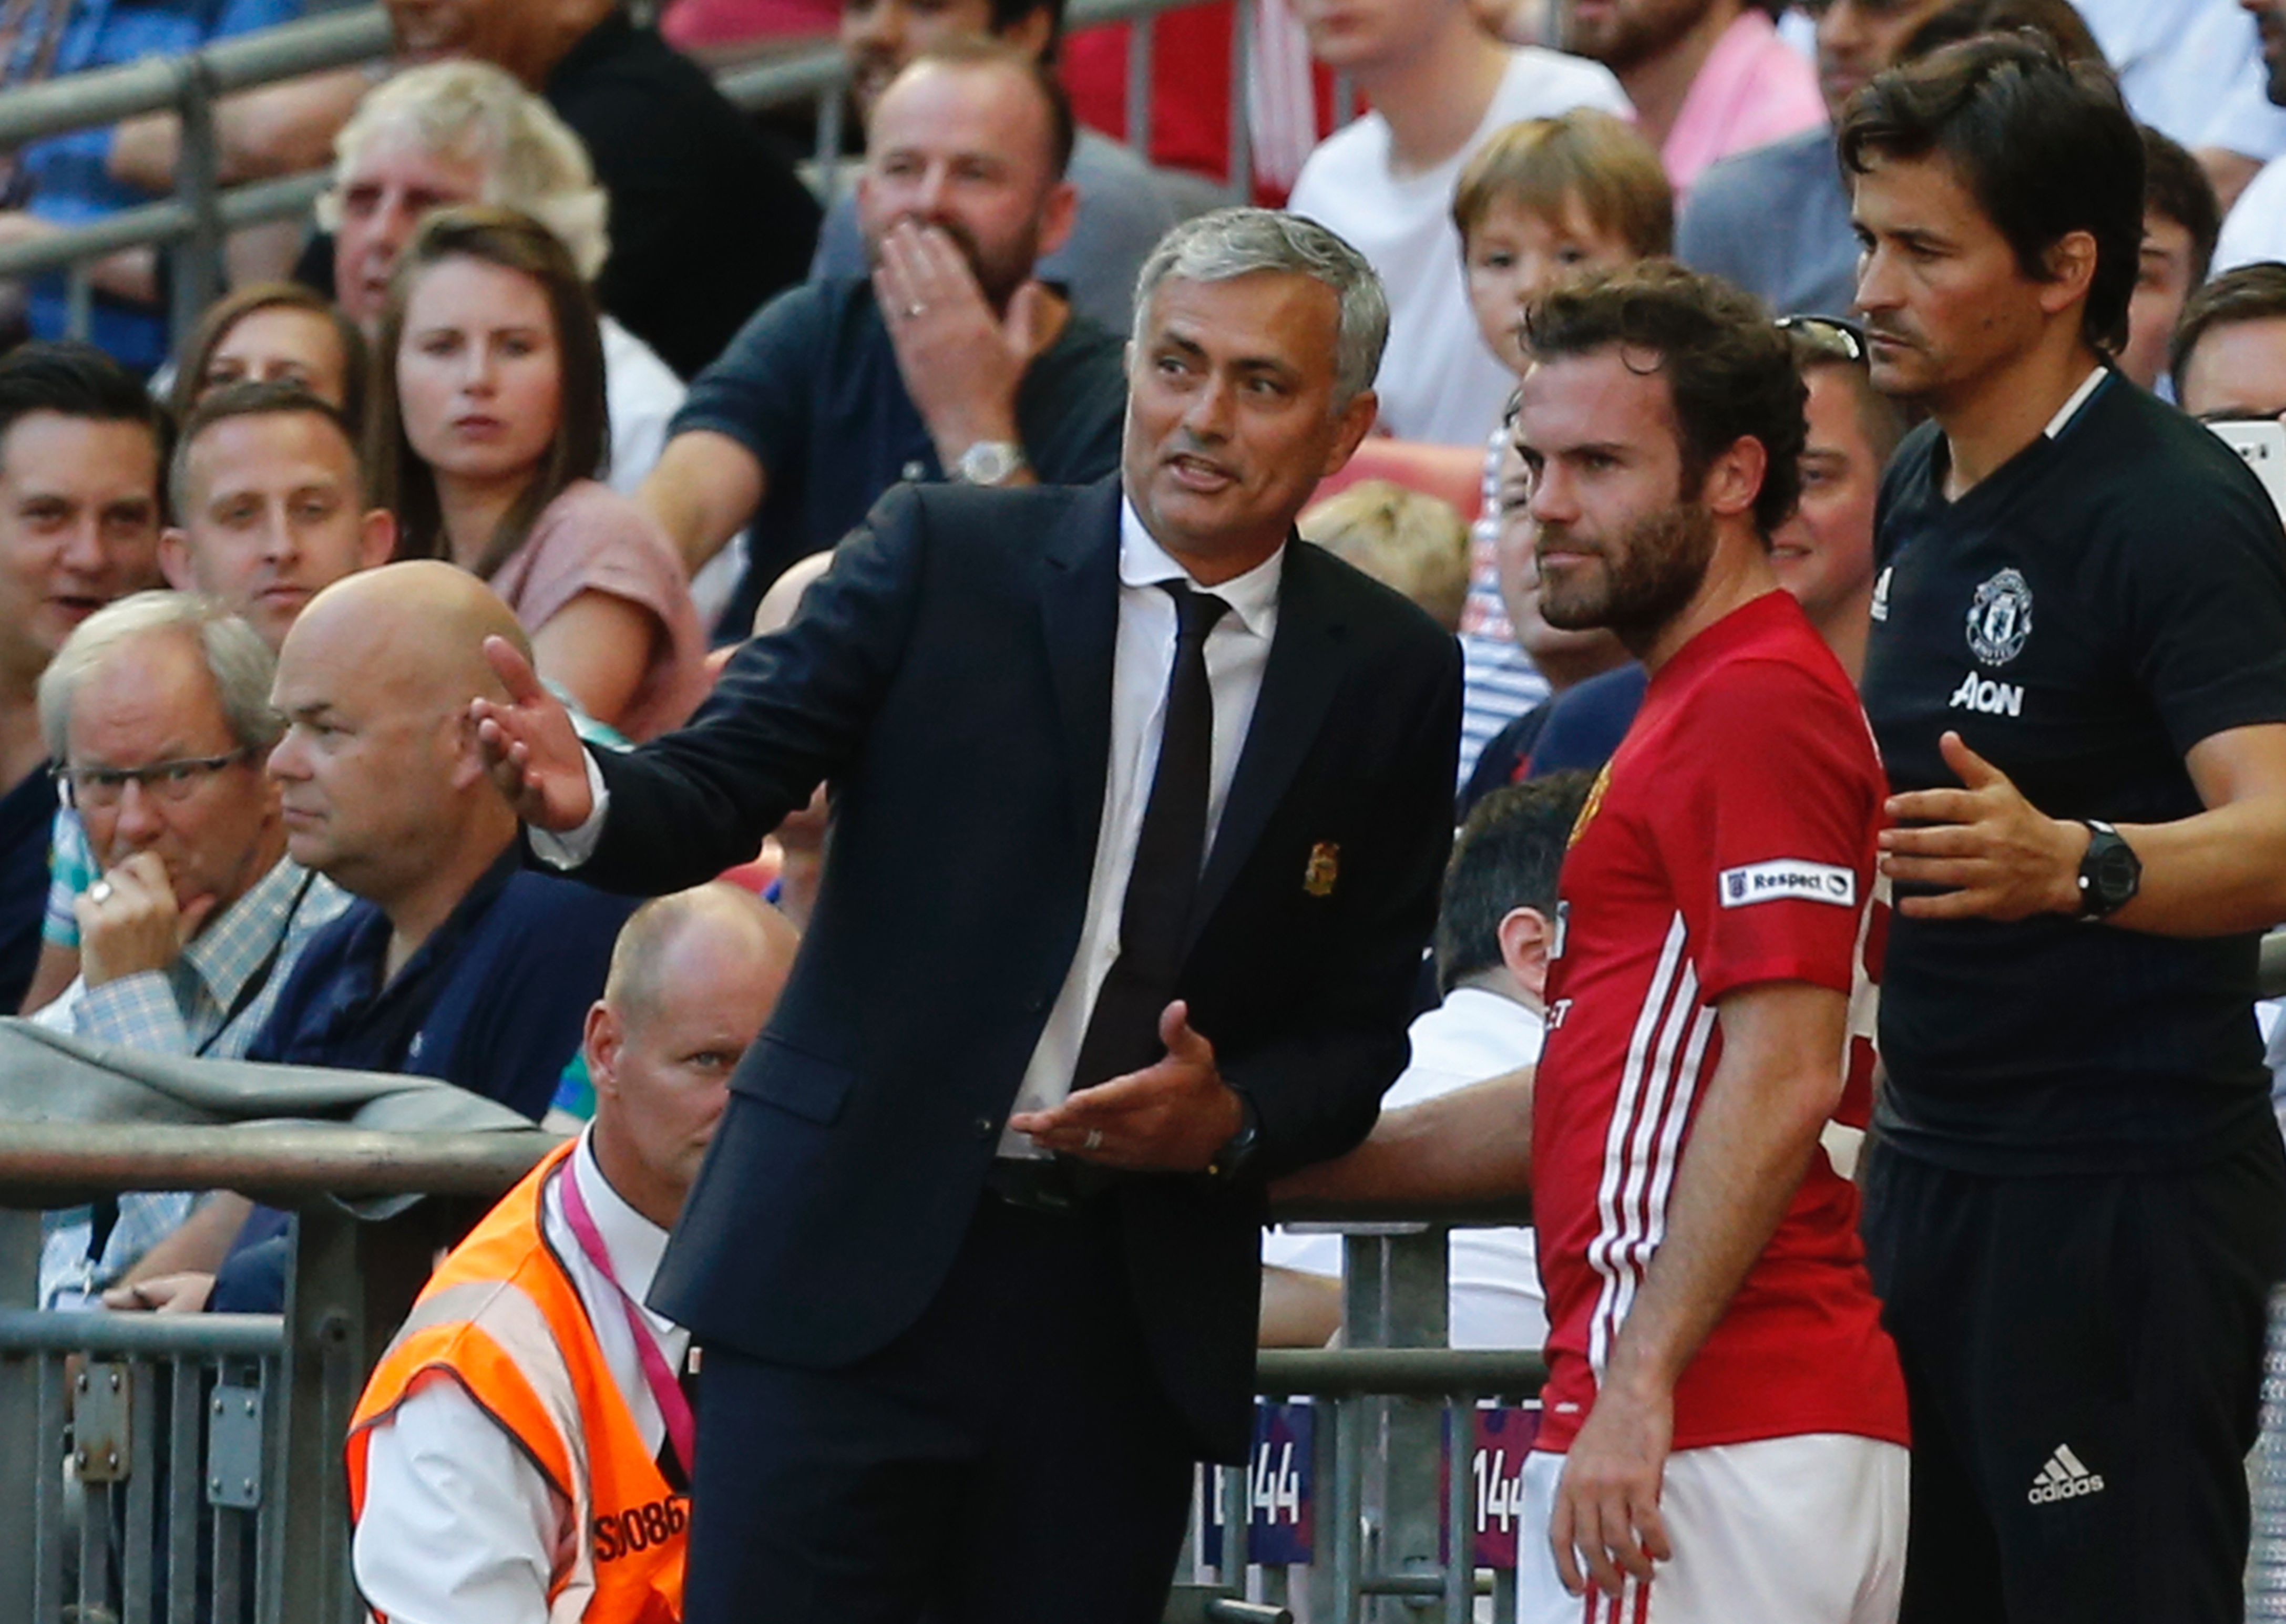 Manchester United's Spanish midfielder Juan Mata (C) talks with Manchester United's Portuguese manager Jose Mourinho (L) and Manchester United's Portuguese assistant manager Rui Faria (R) after he is substituted late on during the FA Community Shield football match between Manchester United and Leicester City at Wembley Stadium in London on August 7, 2016. / AFP / Ian Kington / NOT FOR MARKETING OR ADVERTISING USE / RESTRICTED TO EDITORIAL USE (Photo credit should read IAN KINGTON/AFP/Getty Images)